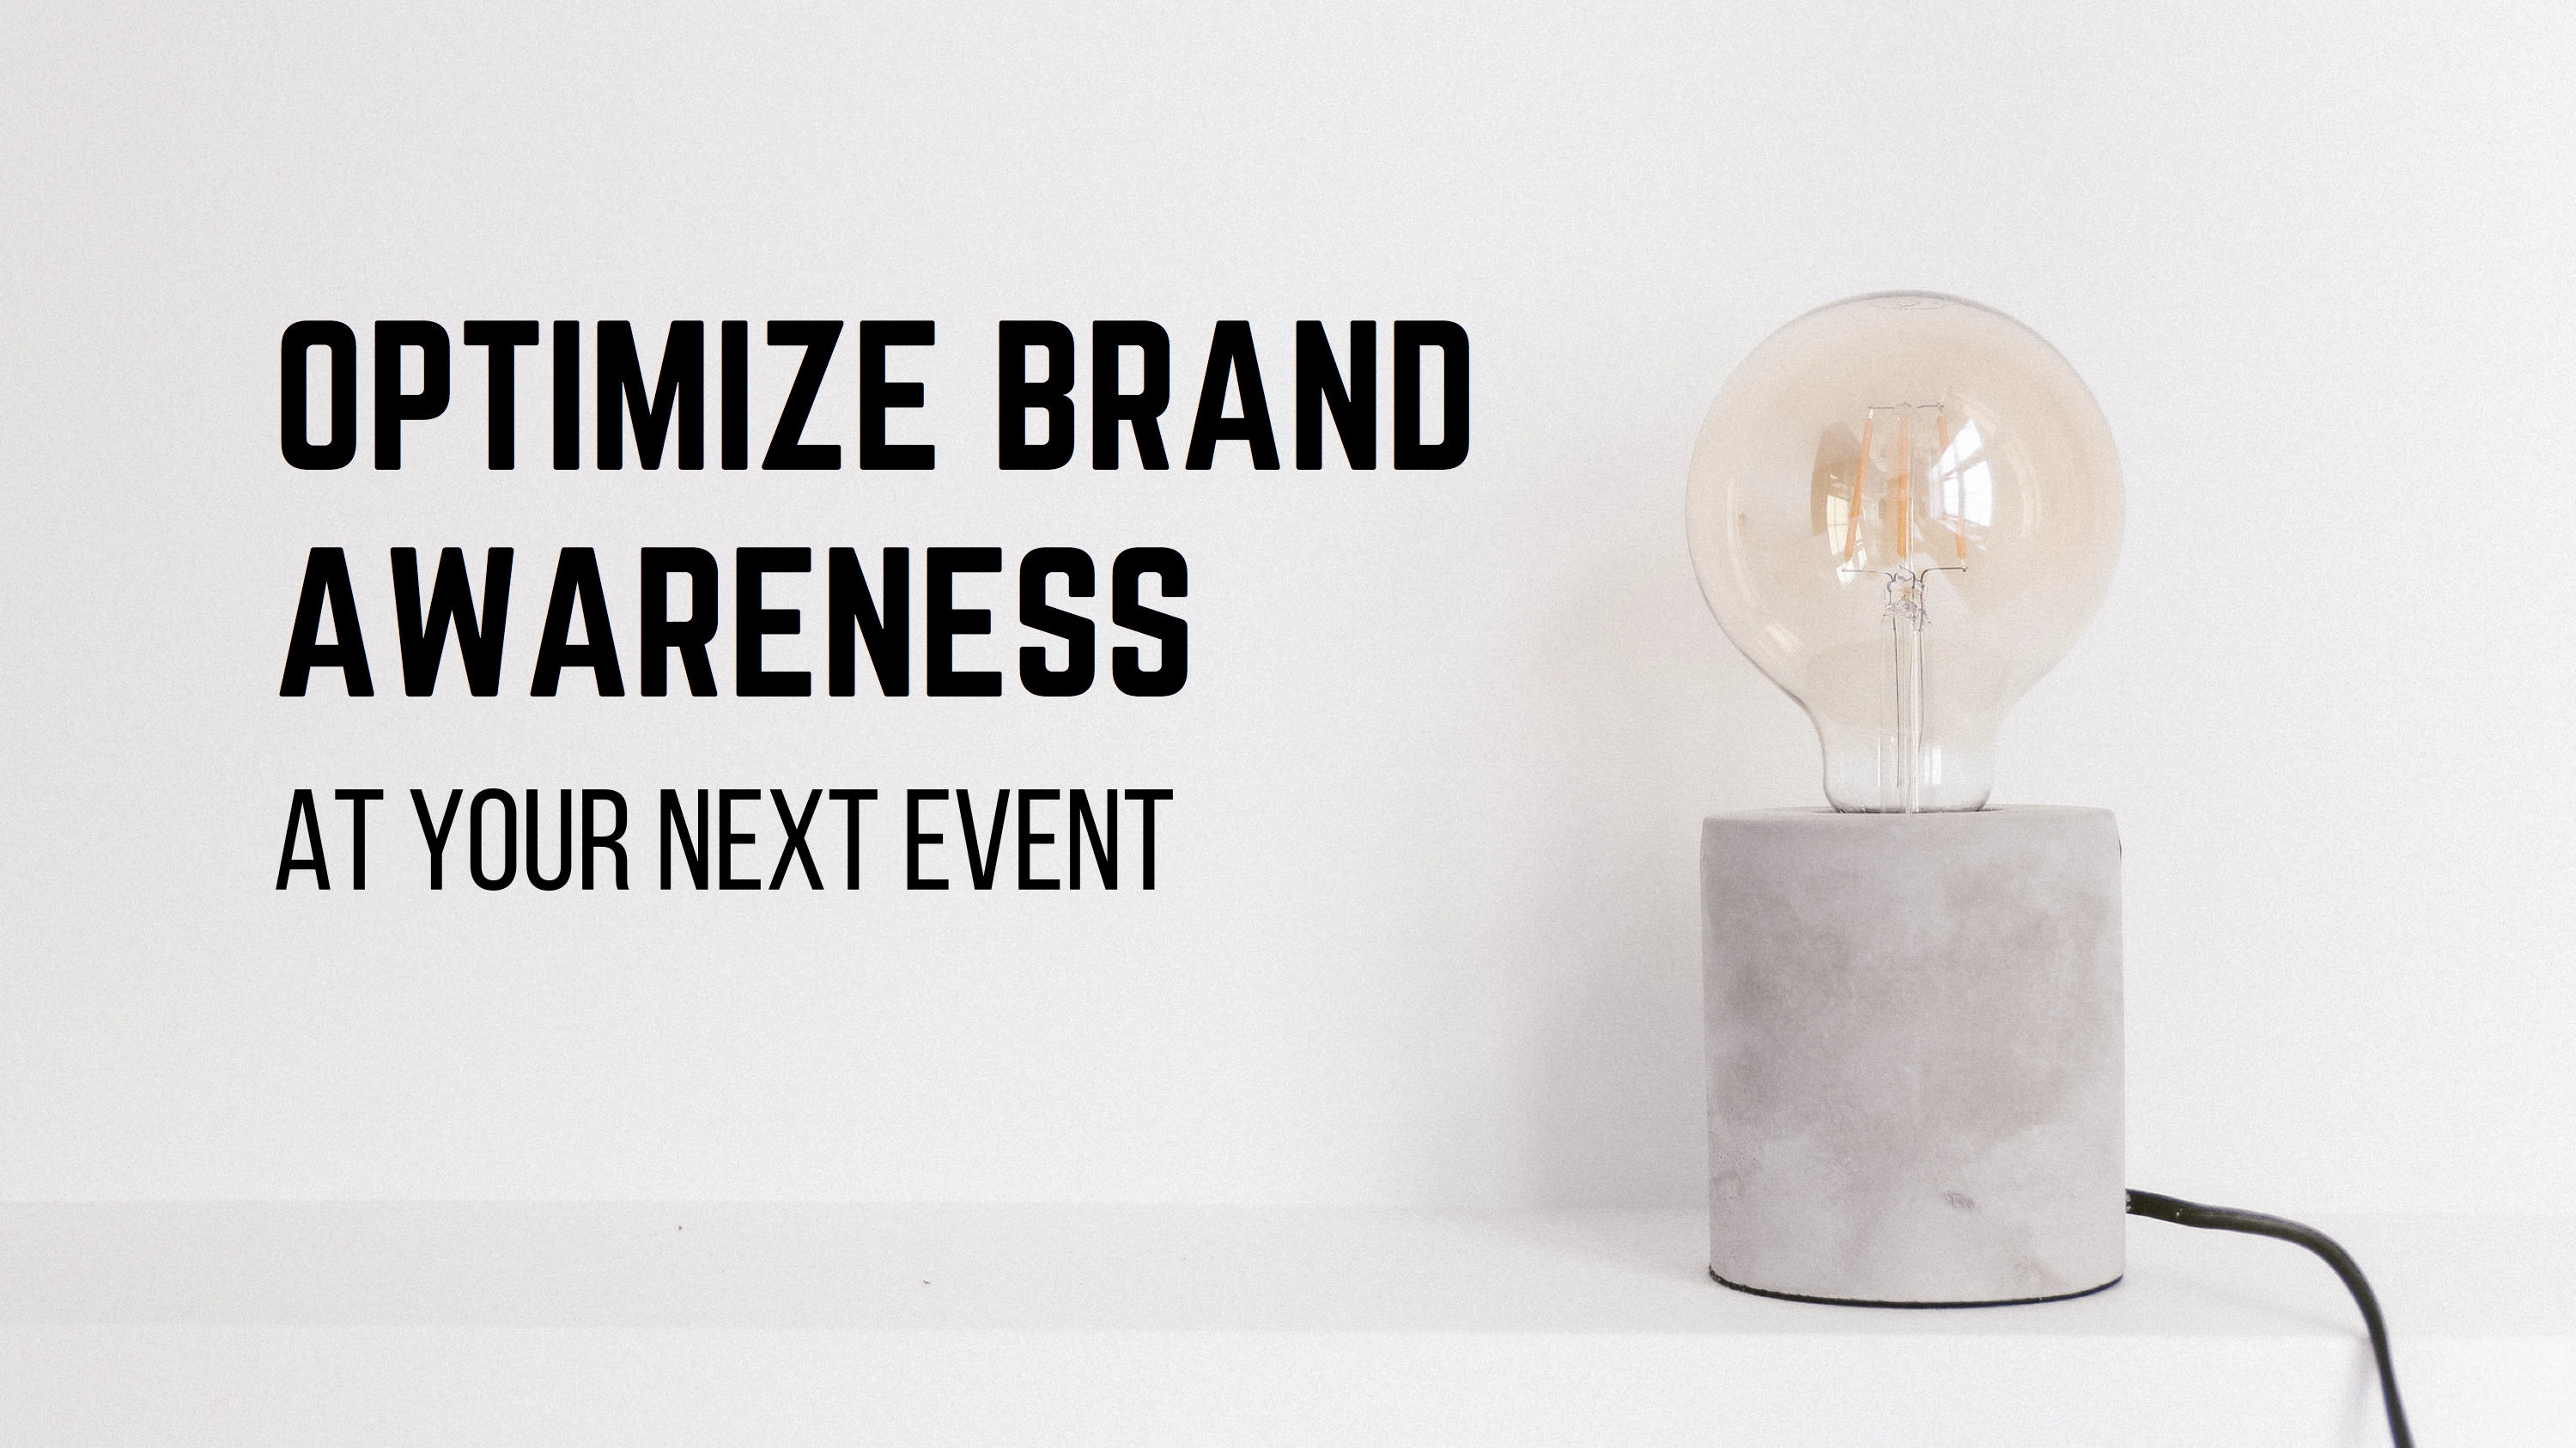 Optimize Brand Awareness At Your Next Event or Trade Show